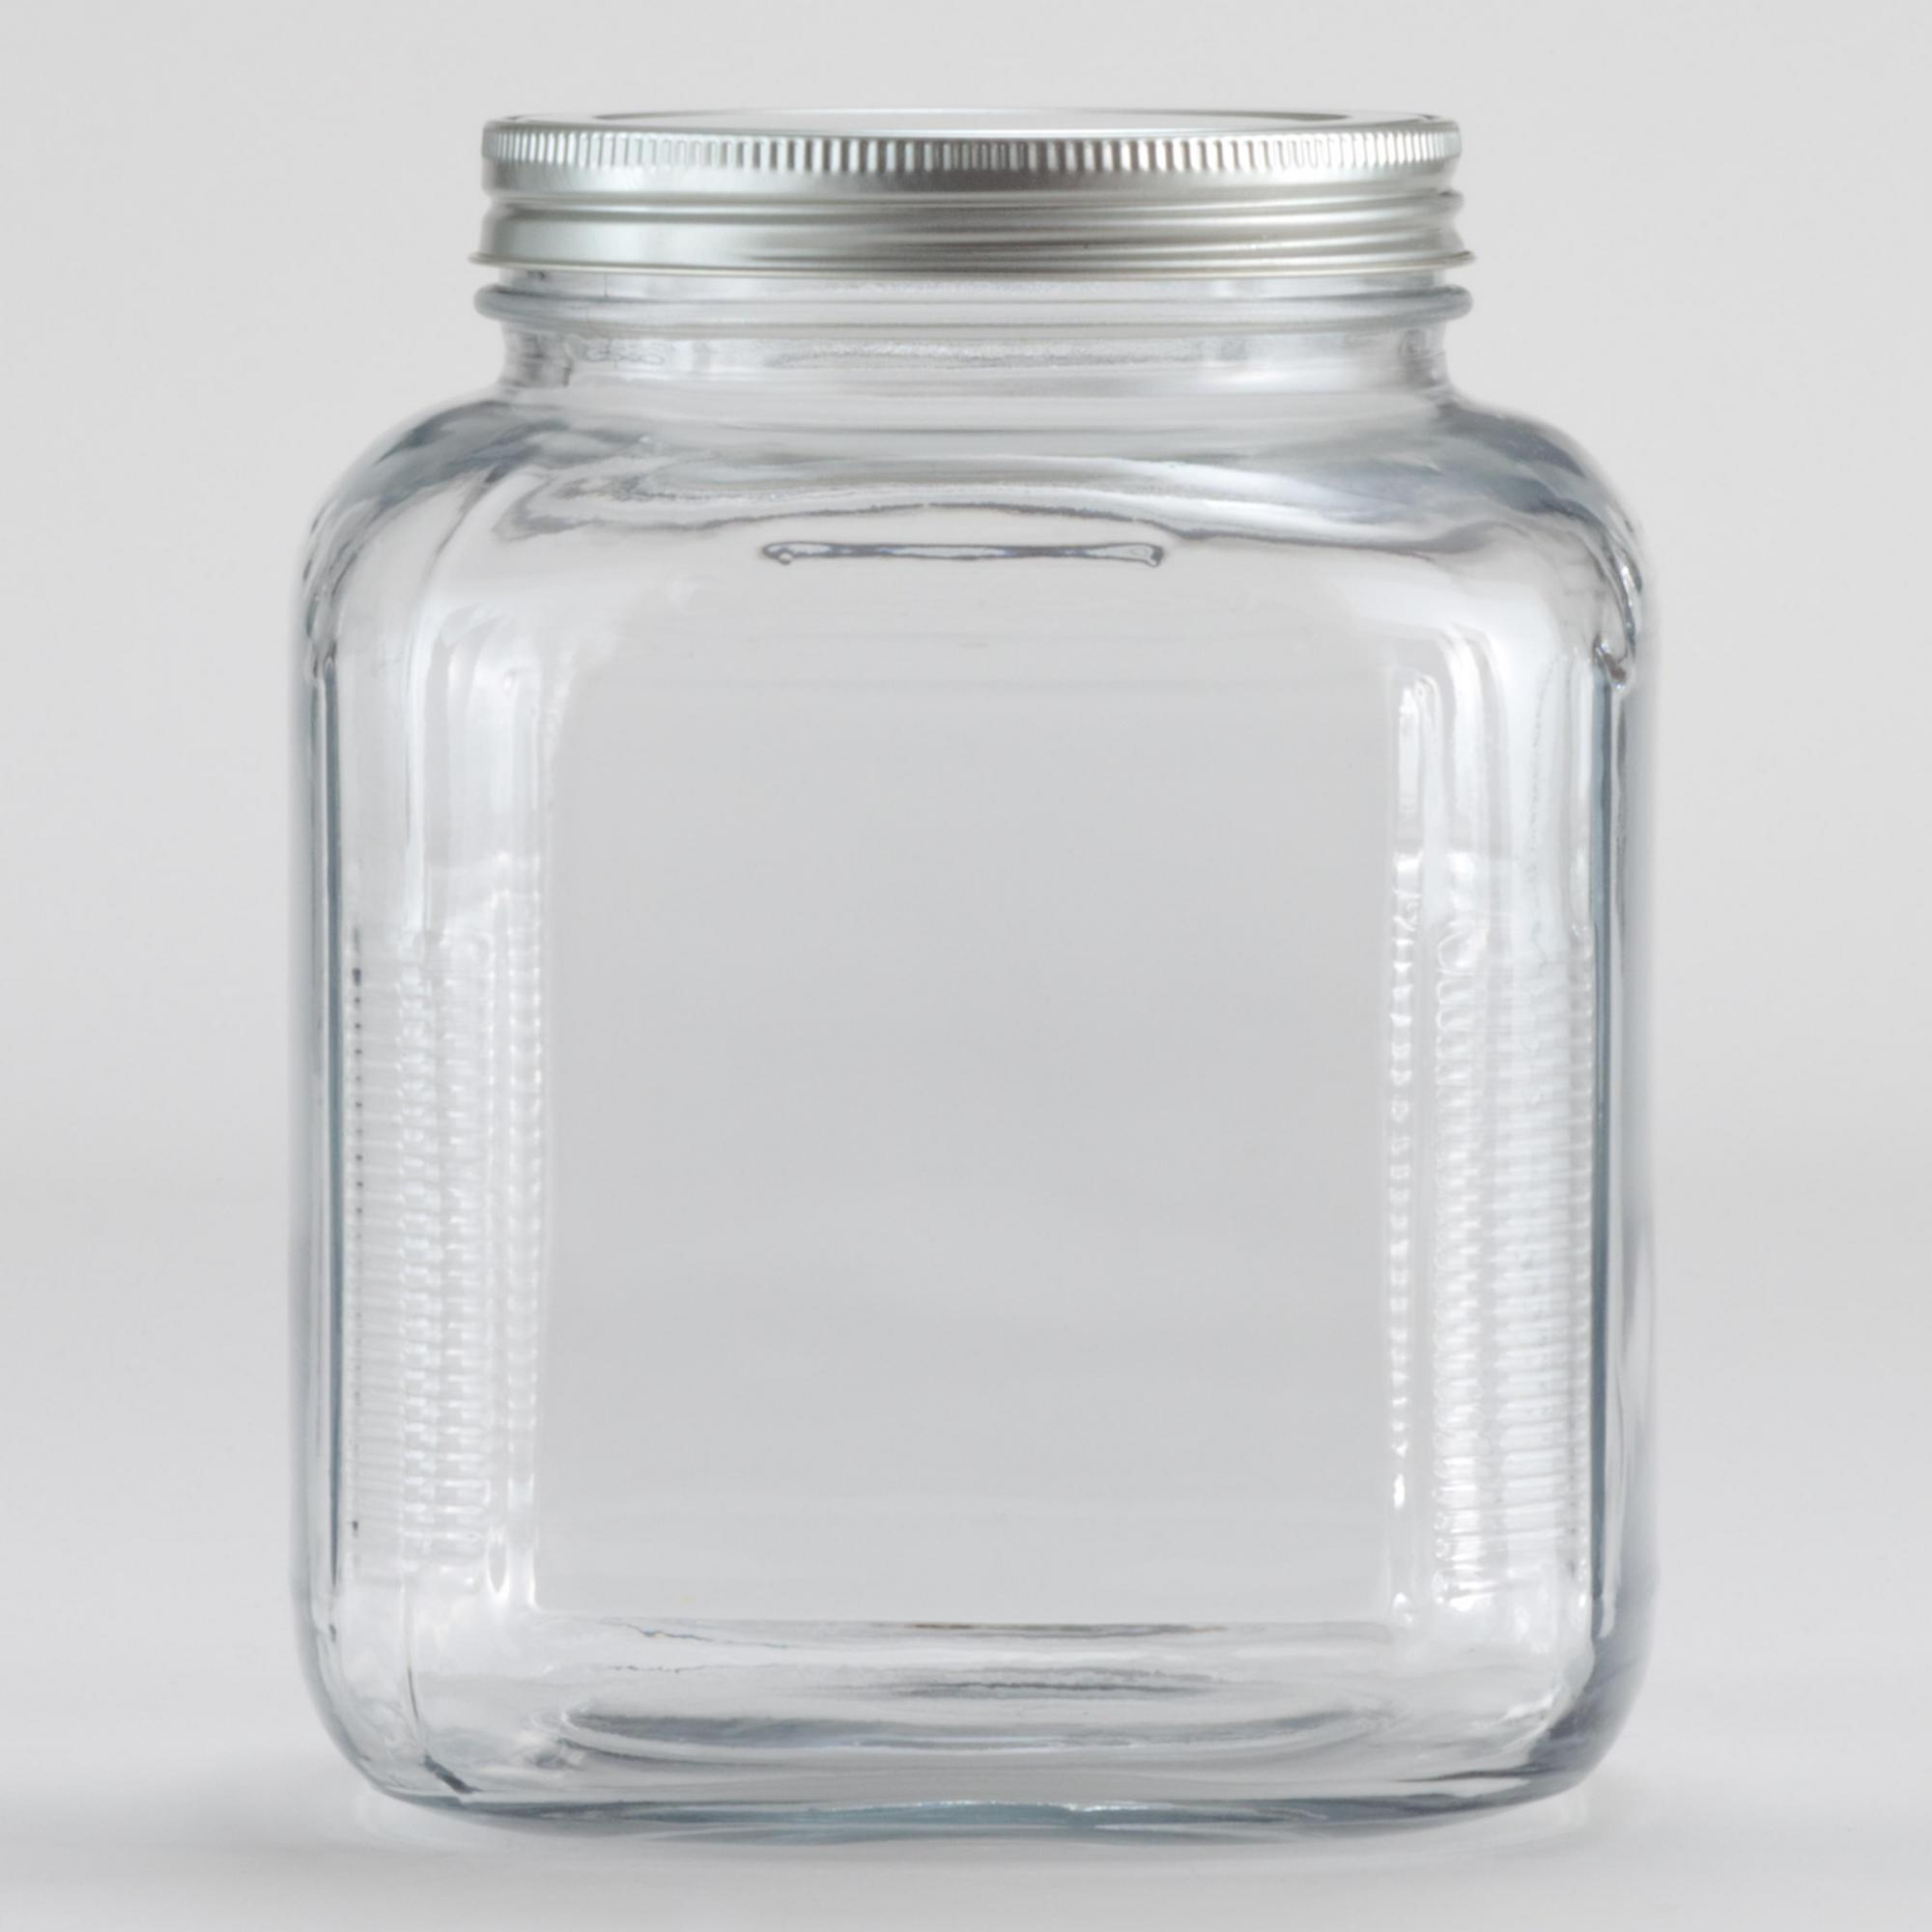 Glass Storage Jars. Showing 40 of results that match your query. Search Product Result. Product - Kerr Wide Mouth Half-Pint Glass Mason Jars with Lids and Bands, 8 oz., 12 Count. Product Image. Price $ 8. Product Title. Kerr Wide Mouth Half-Pint Glass Mason Jars with Lids and Bands, 8 .